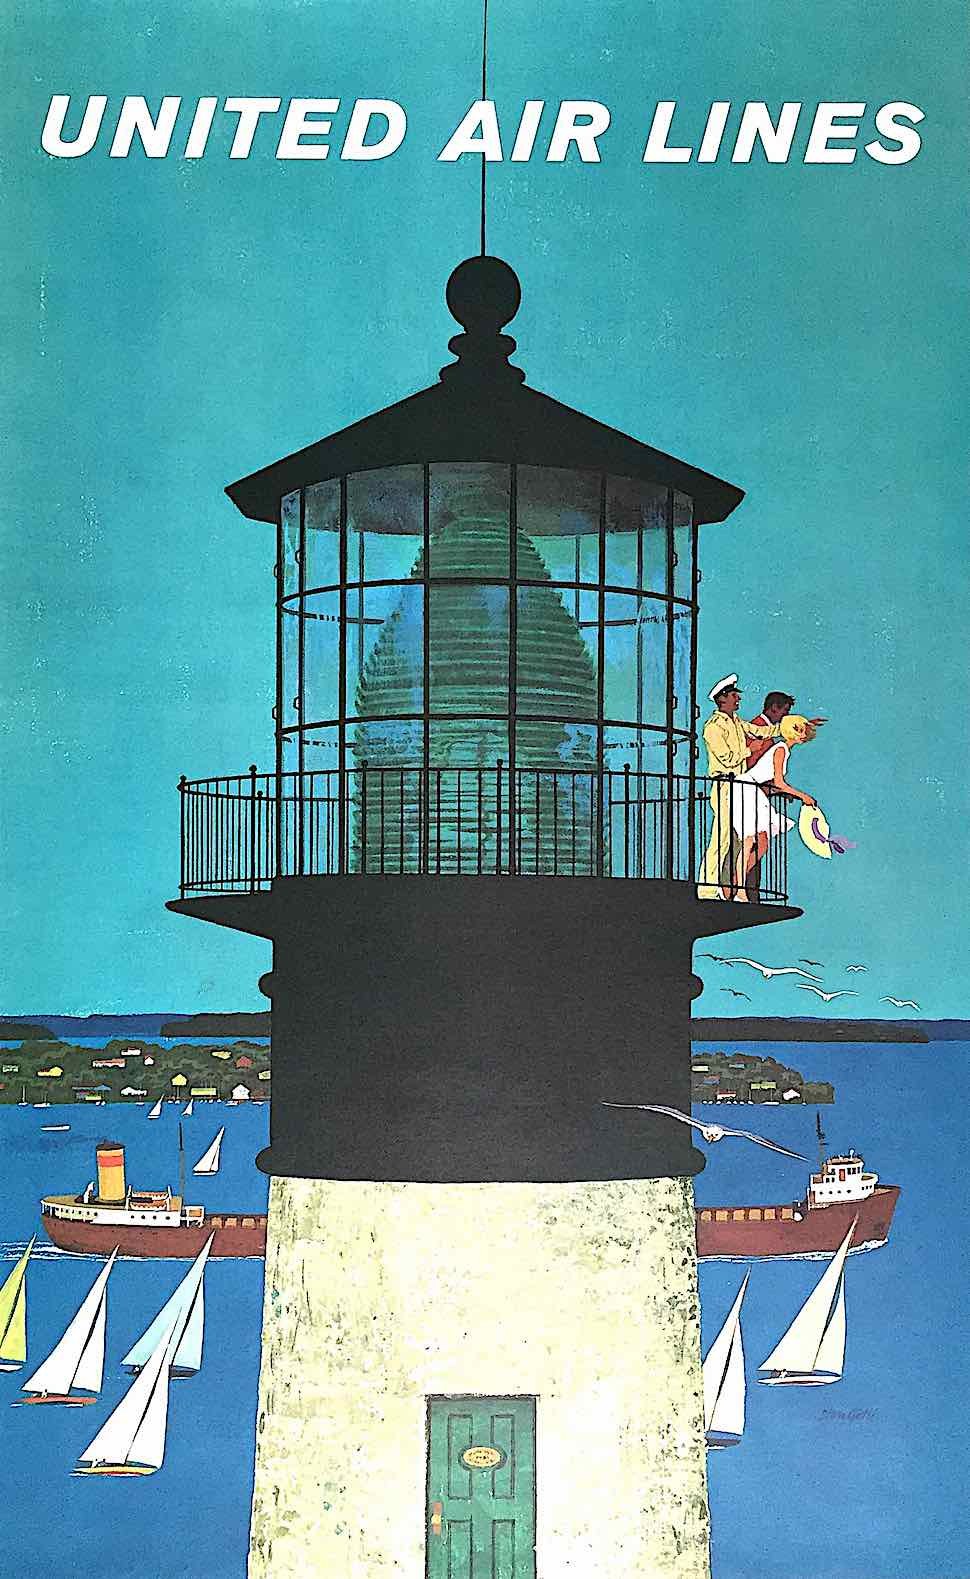 a Stan Galli illustration of people looking from a lighthouse